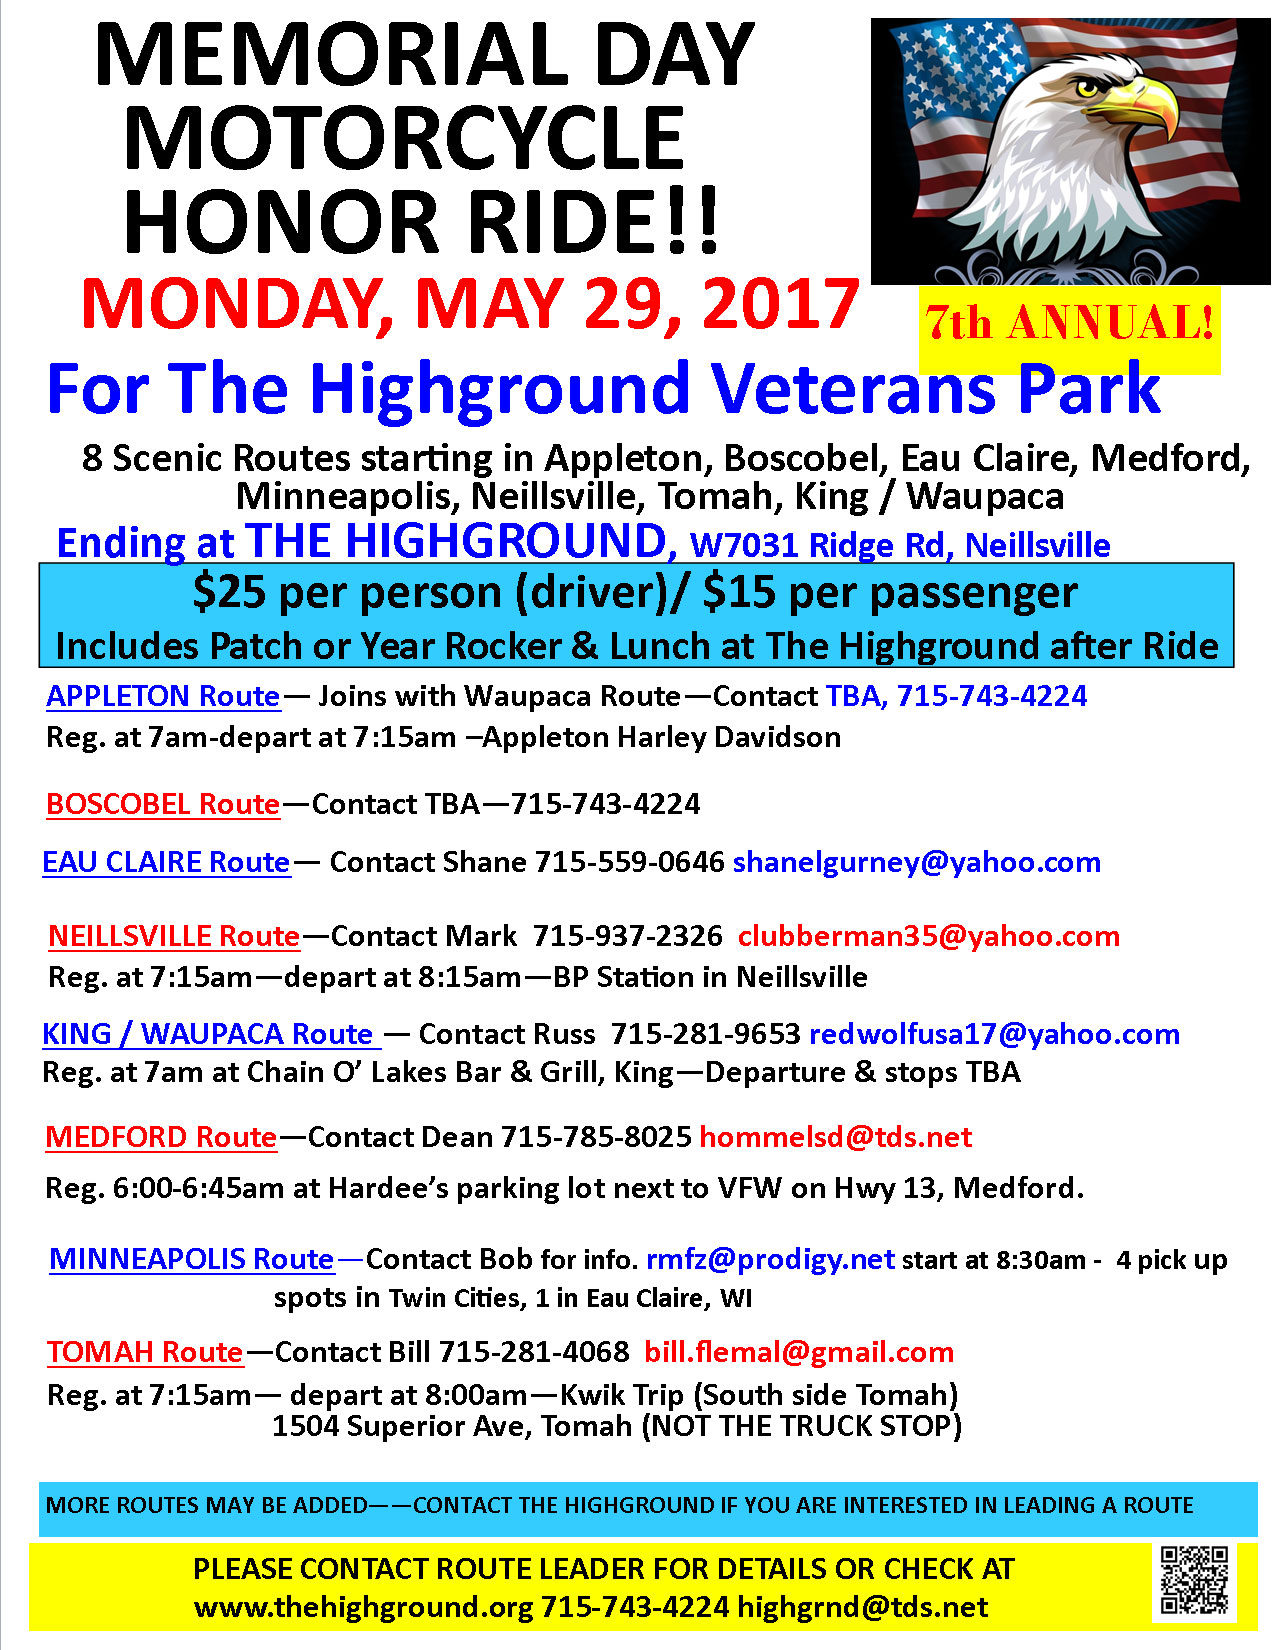 7th Annual Highground Memorial Day Motorcycle Honor Ride  Neillsville,WI